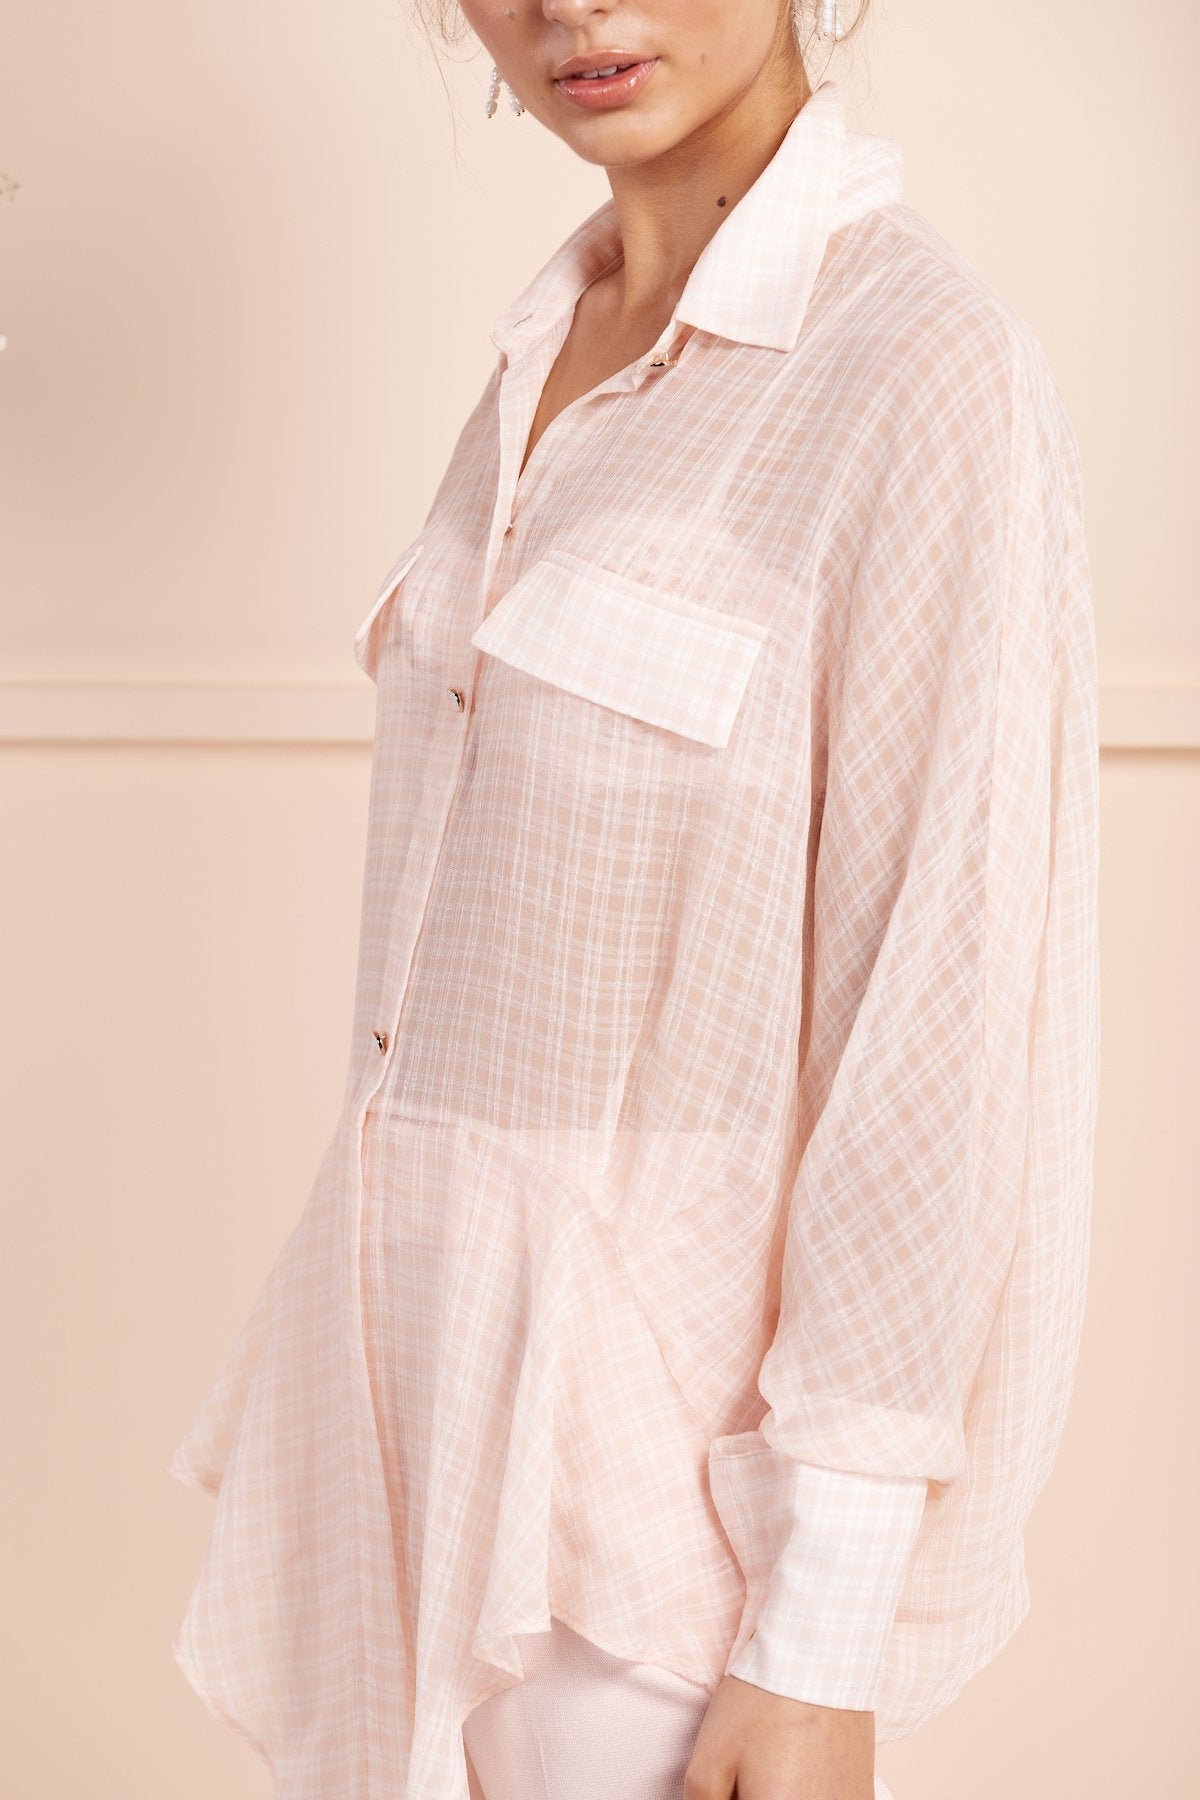 gorgeous bubish pink check silk shirt